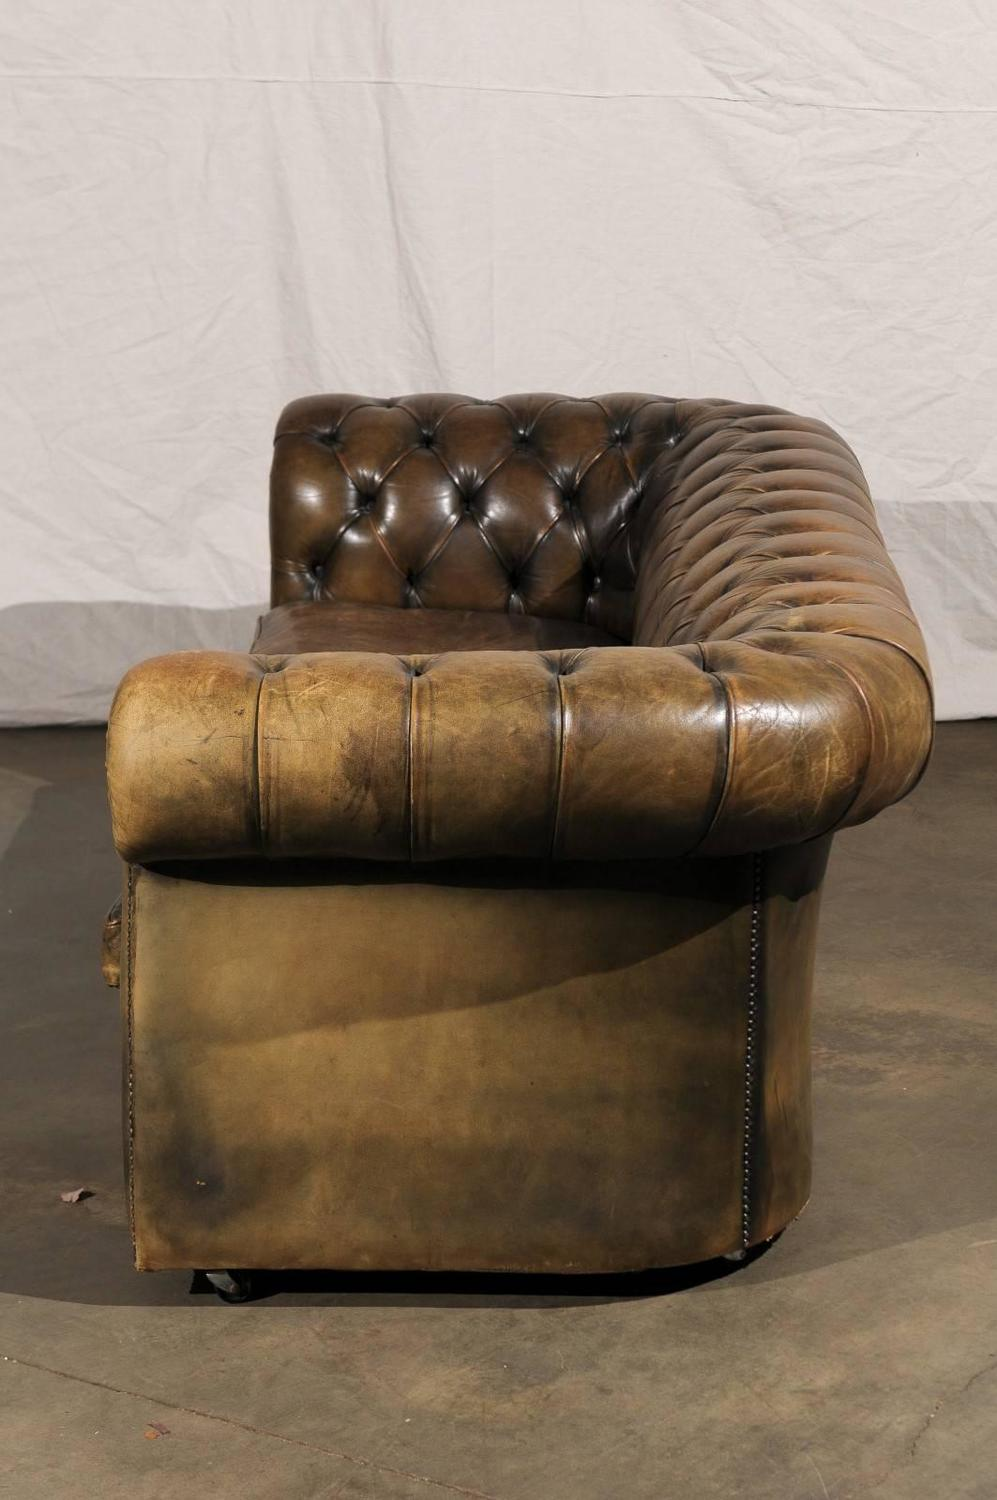 20th century english chesterfield sofa for sale at 1stdibs for Decor jewelry chesterfield